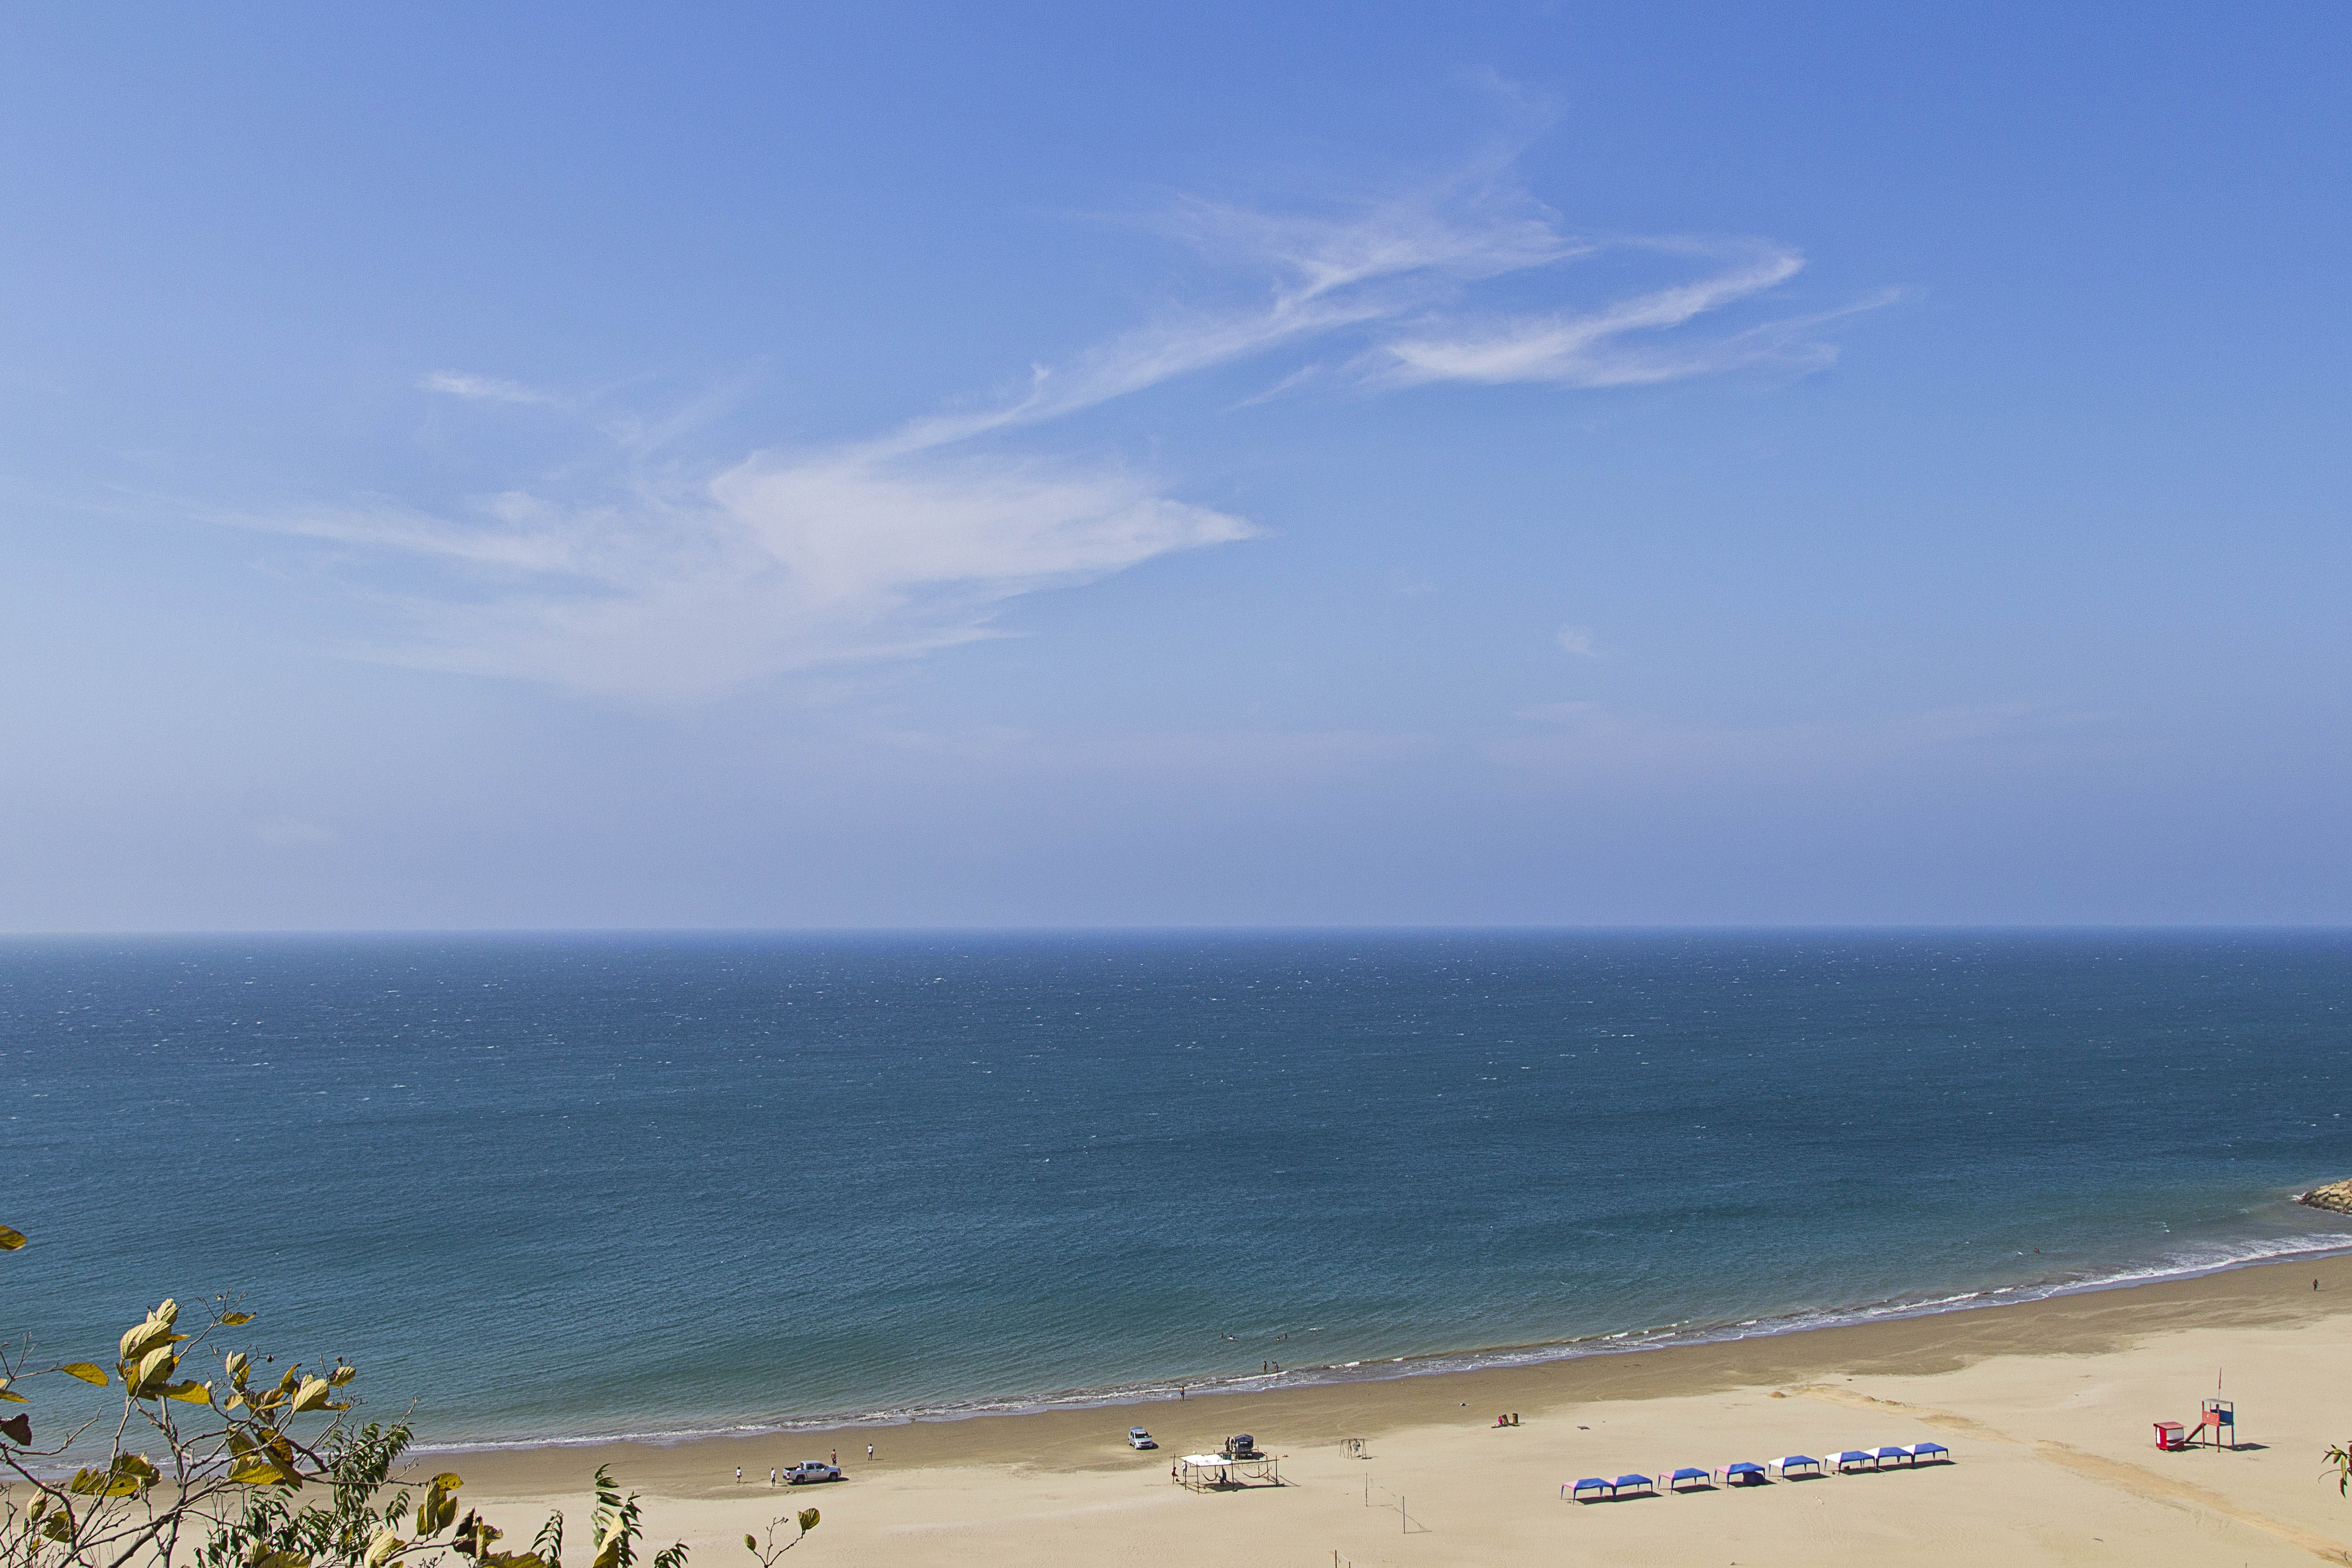 Cool view of the blue tranquil ocean and clear cloud at Santa Marianita beach